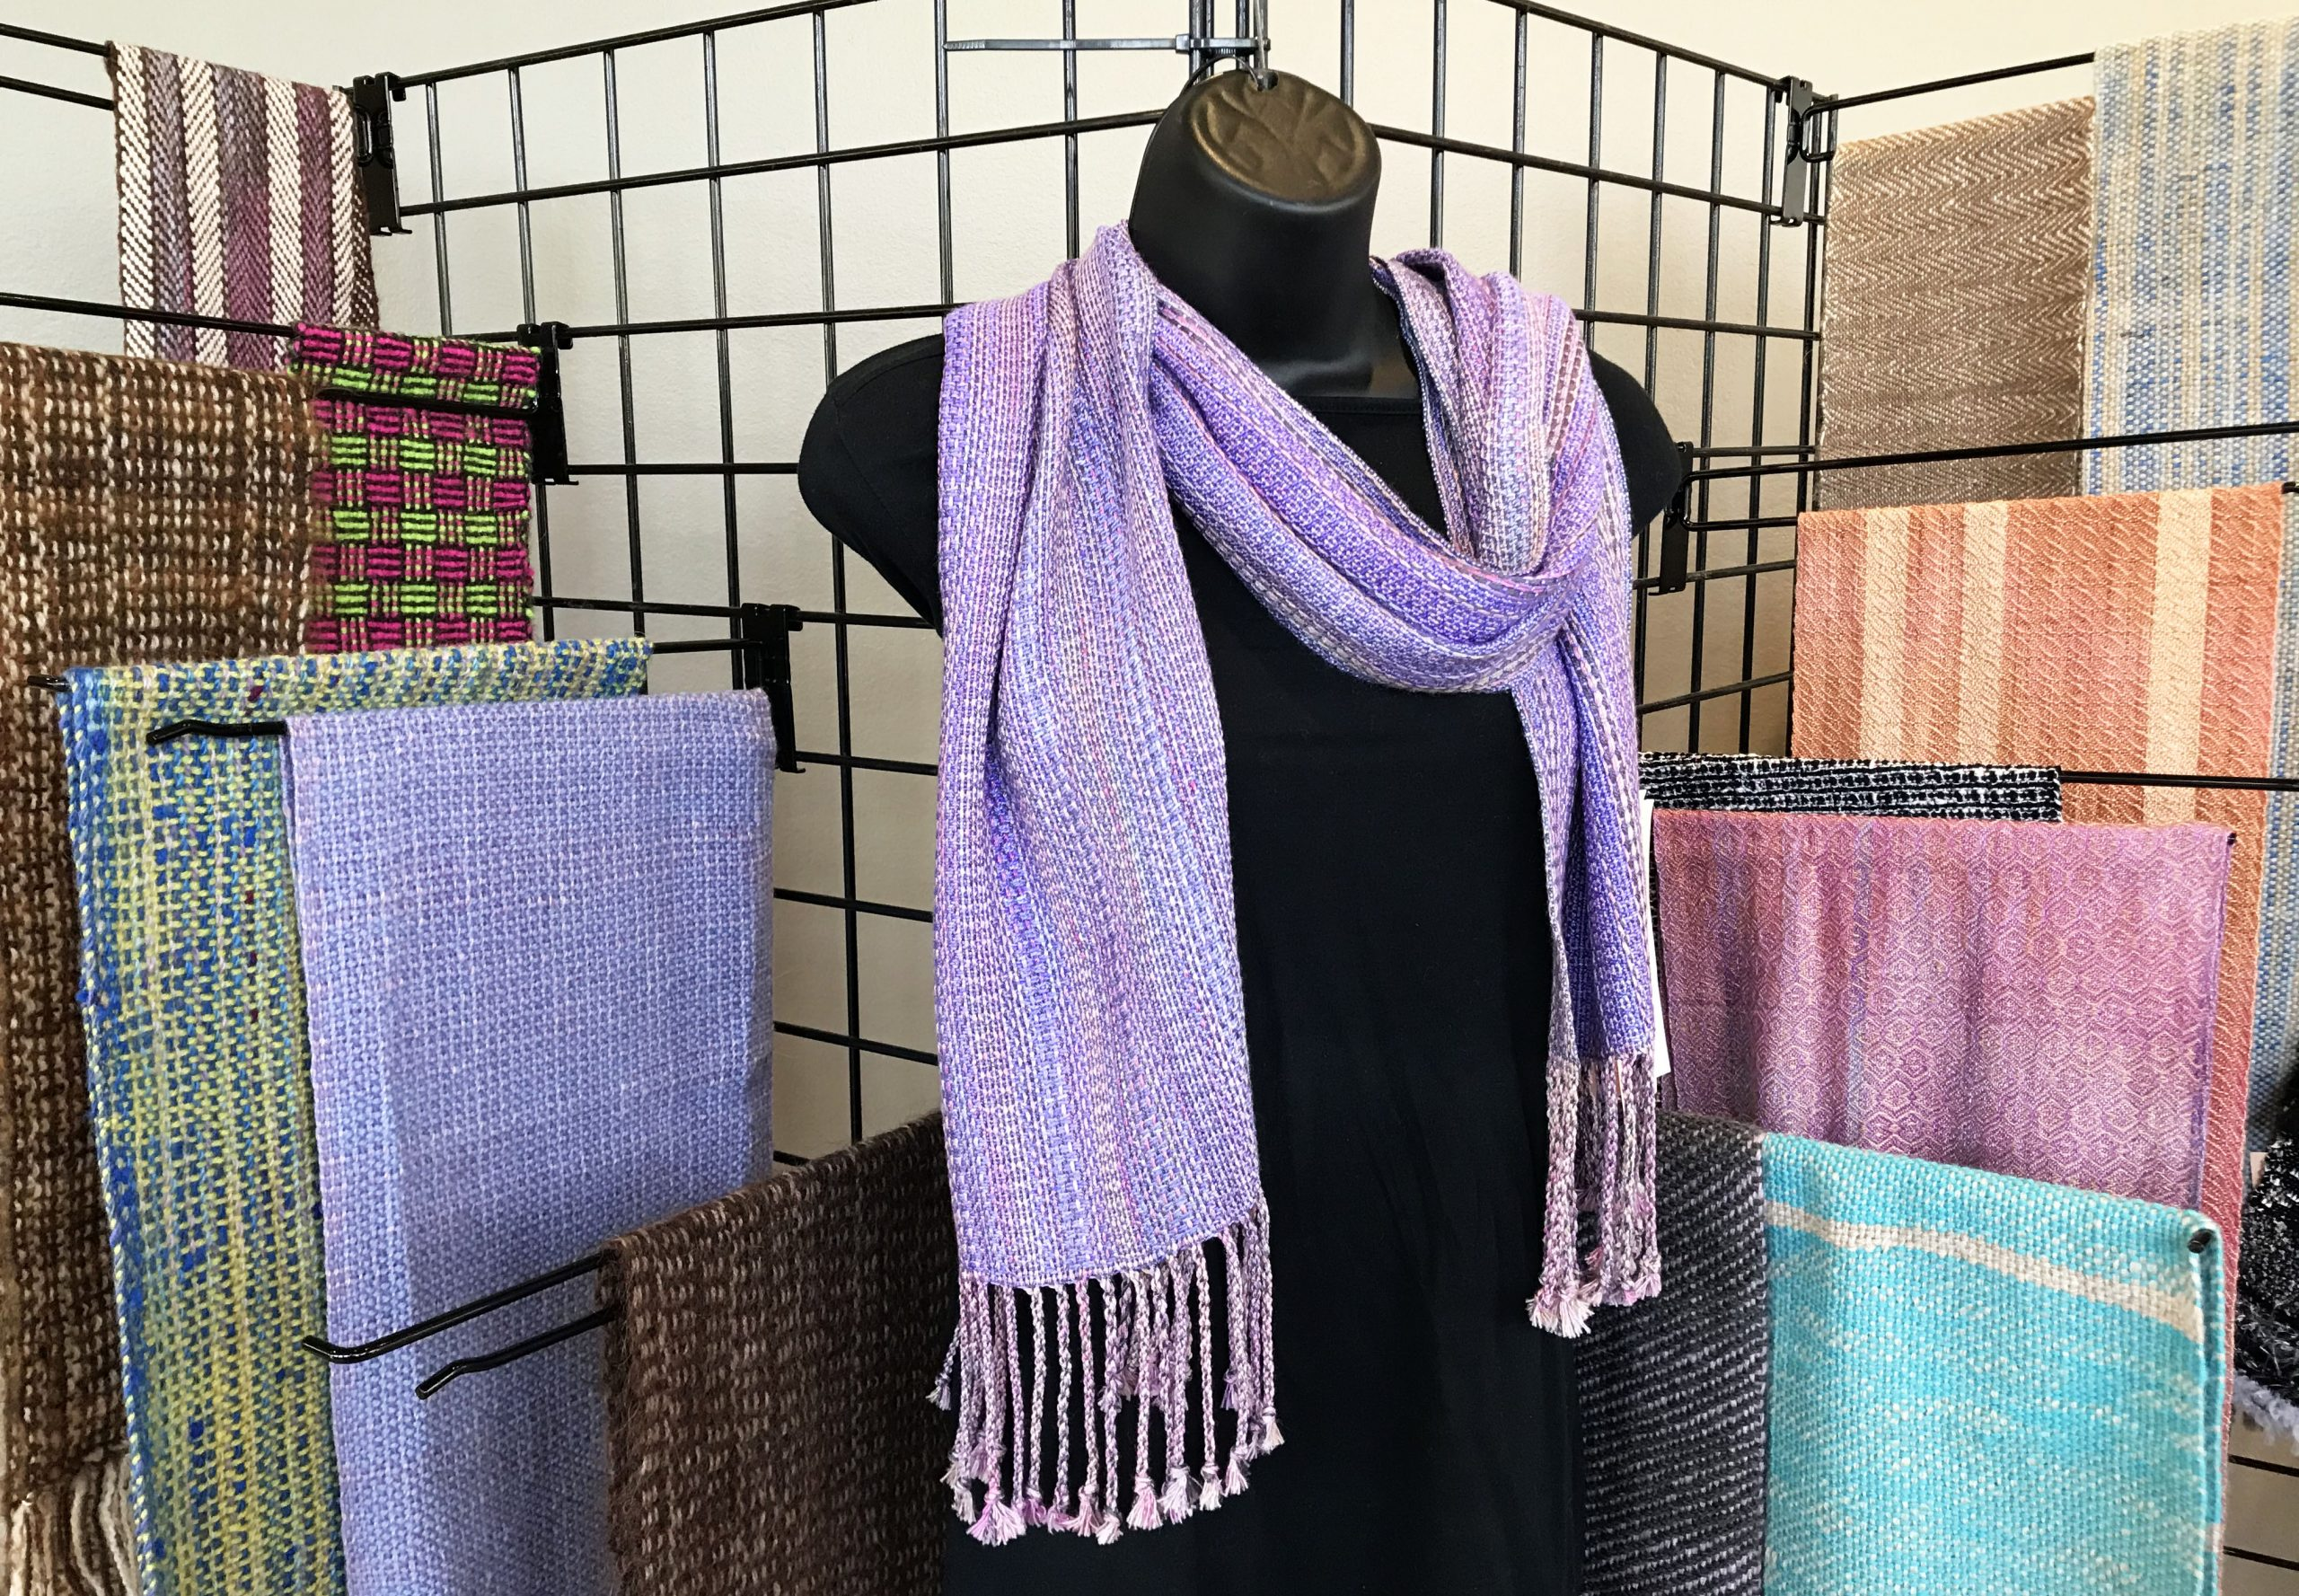 A beautiful selection of woolen scarves